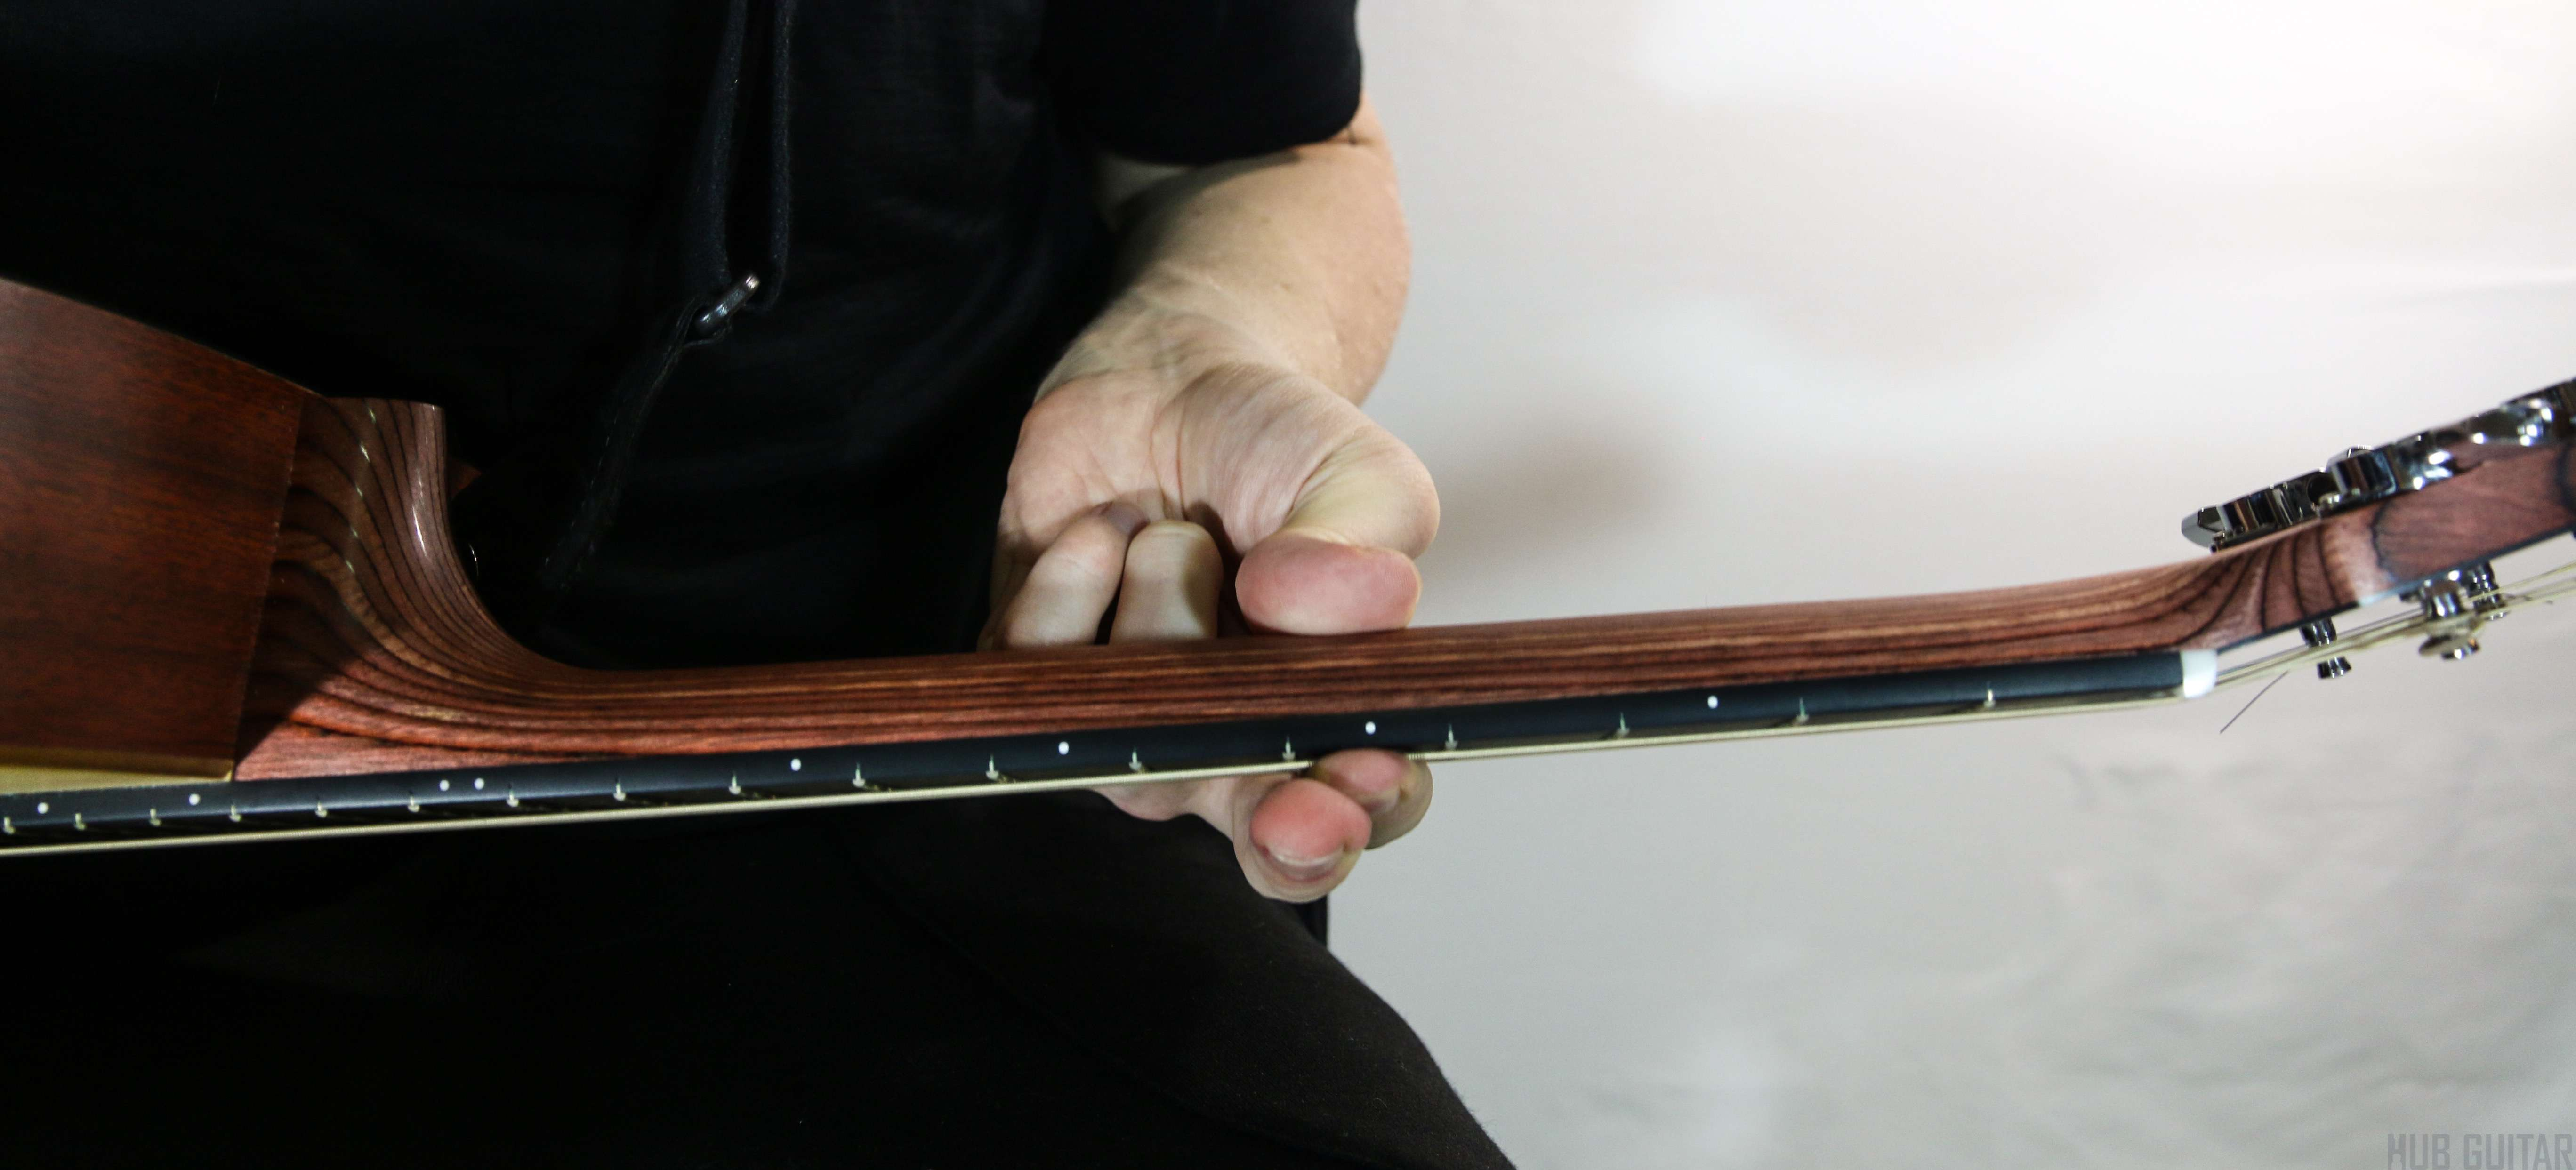 Using the thumb to support the barre chord.